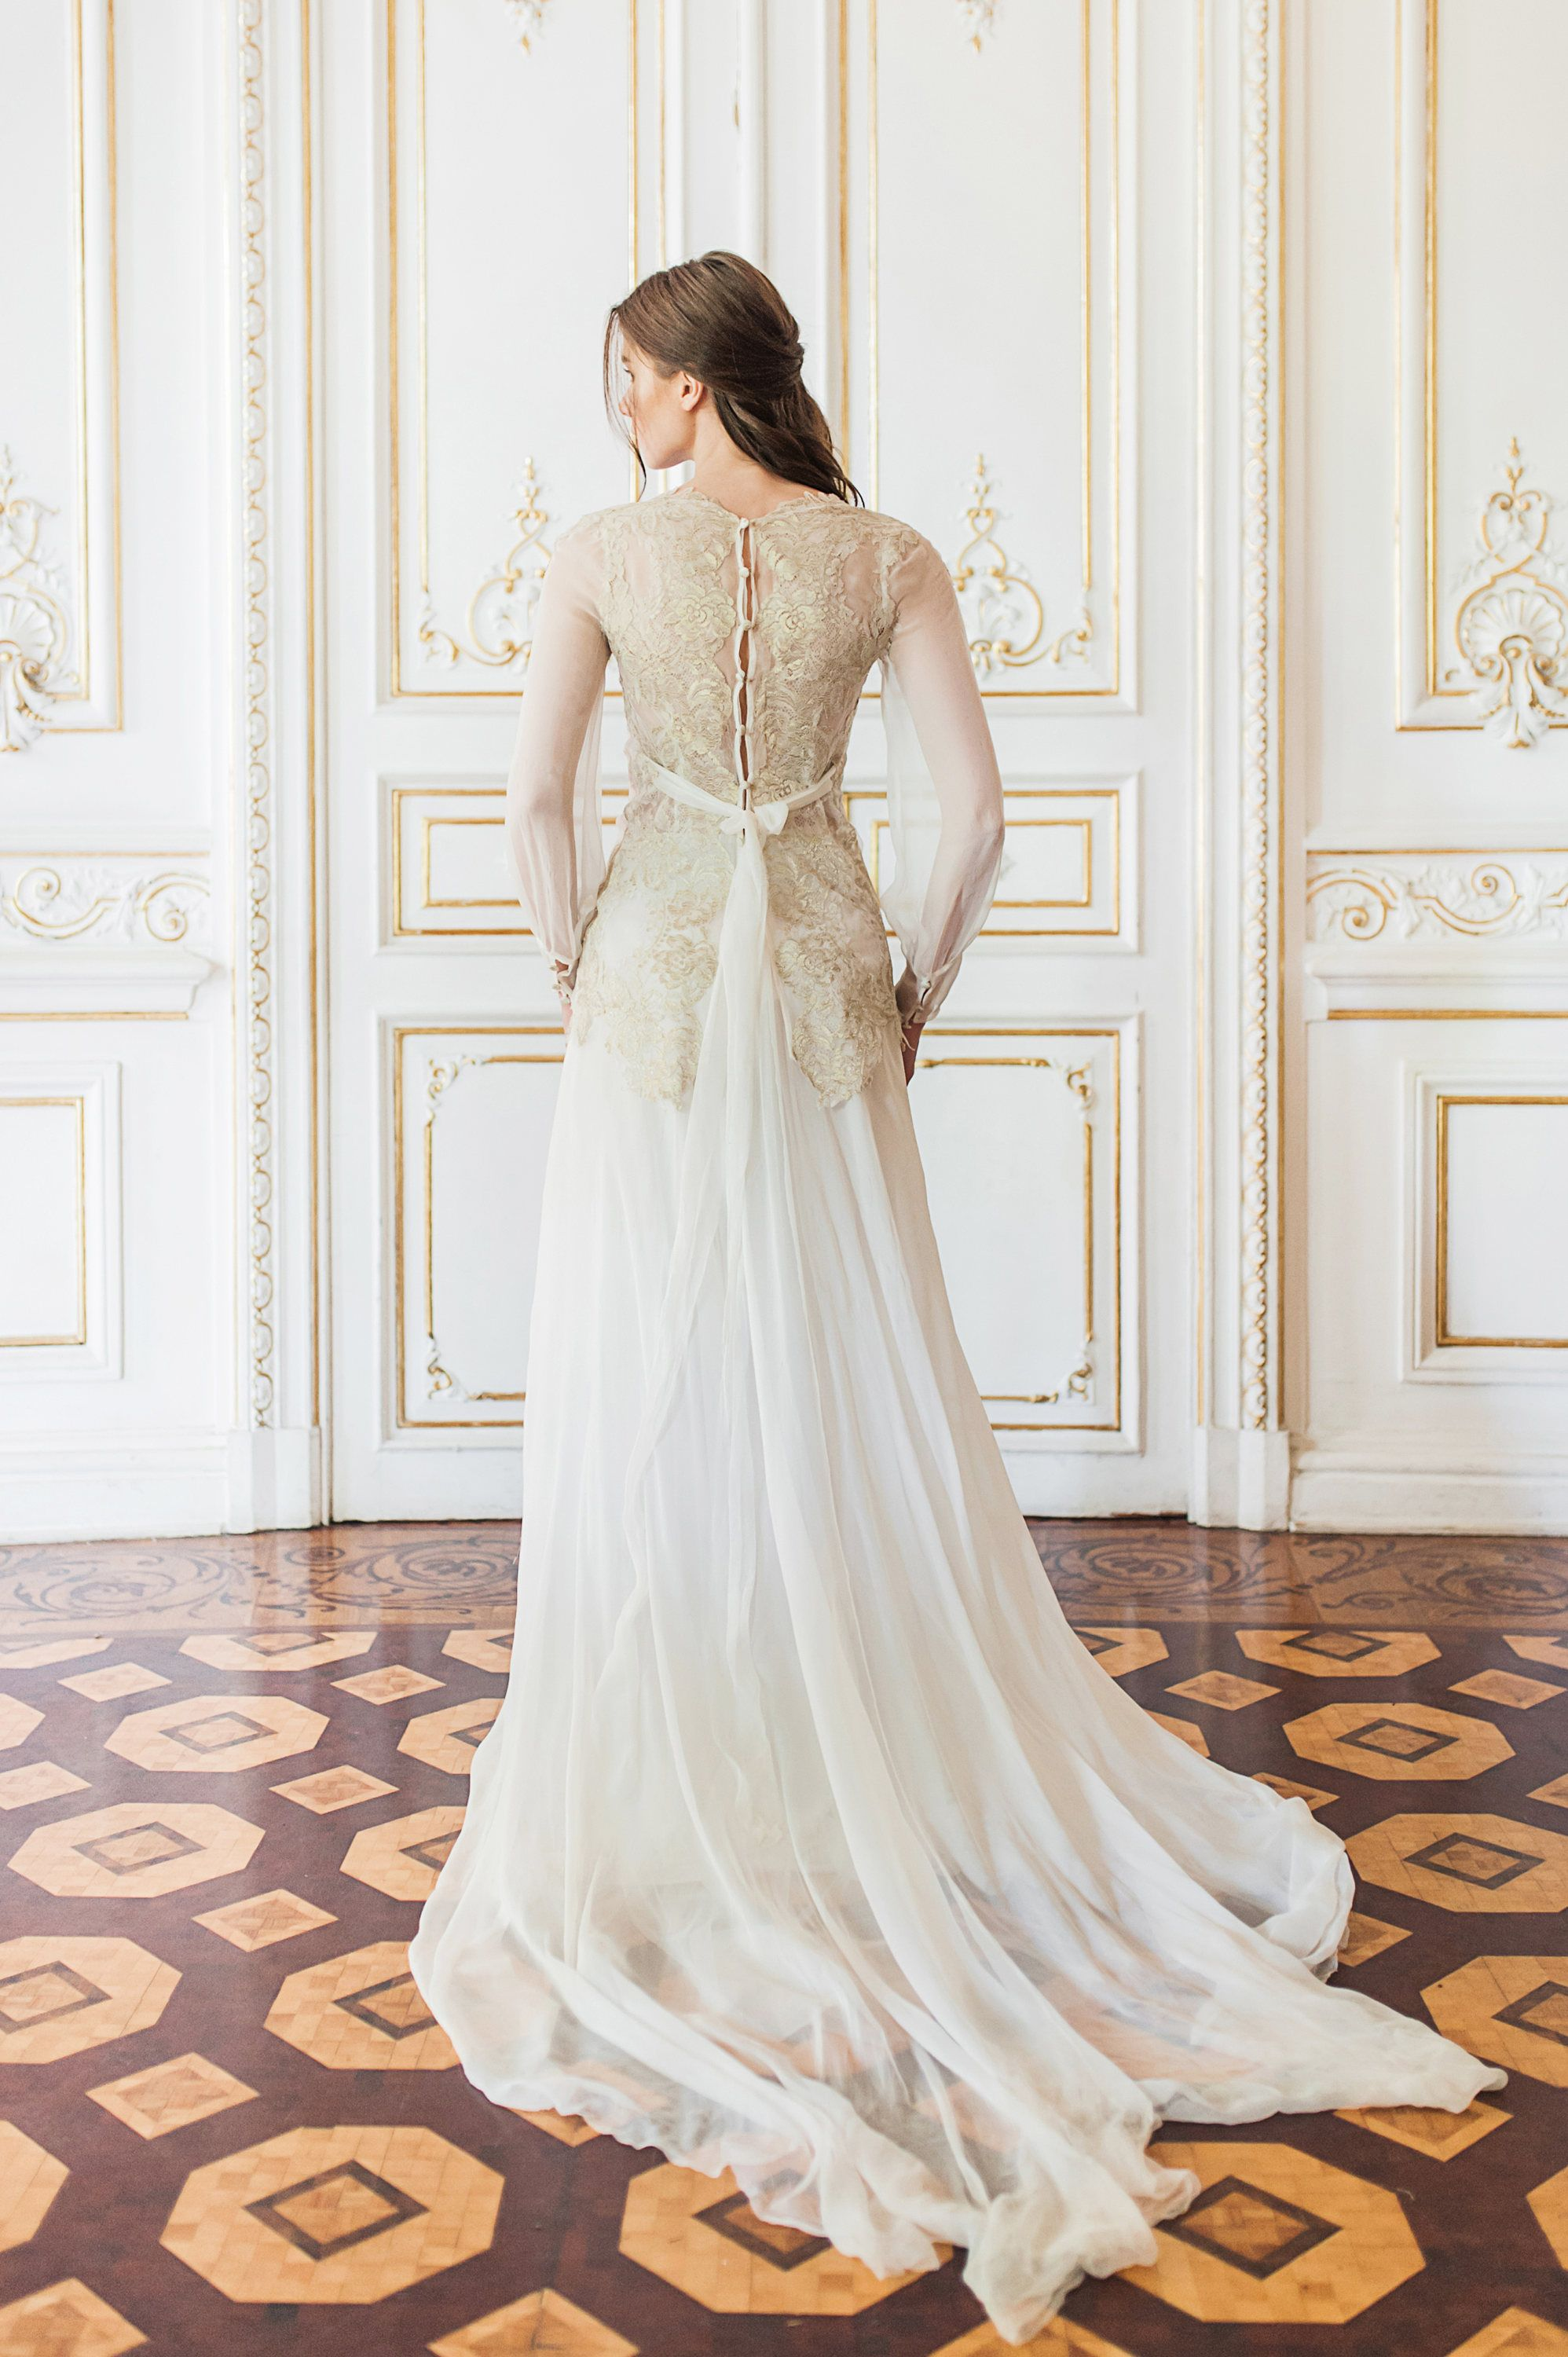 eaab663d718cc Bishop sleeve wedding gown with gold lace bodice // Coligny wedding dress  by CathyTelle on Etsy